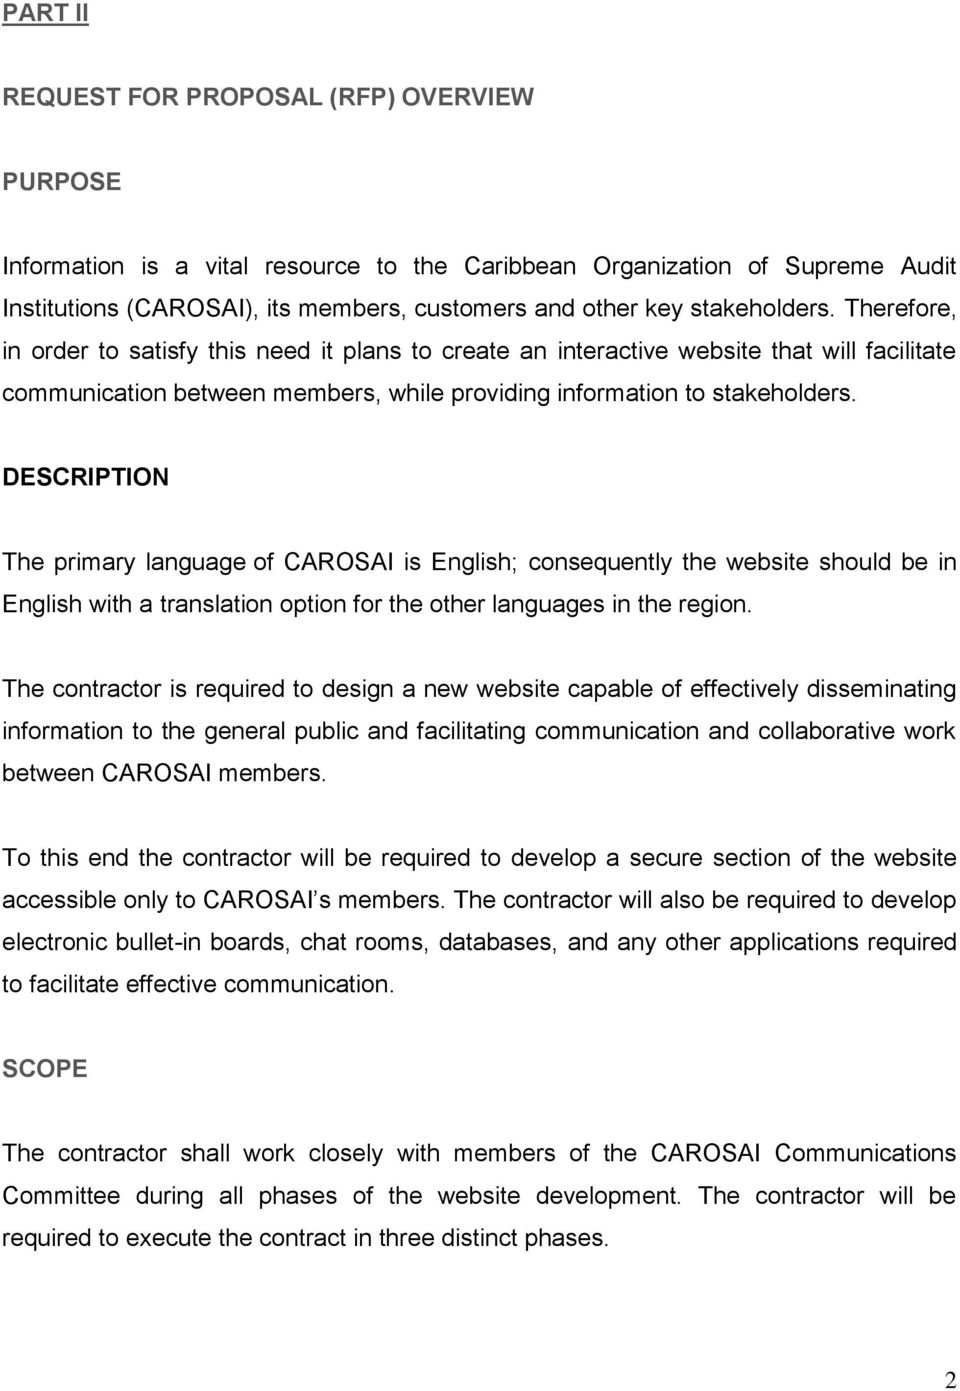 DESCRIPTION The primary language of CAROSAI is English; consequently the website should be in English with a translation option for the other languages in the region.